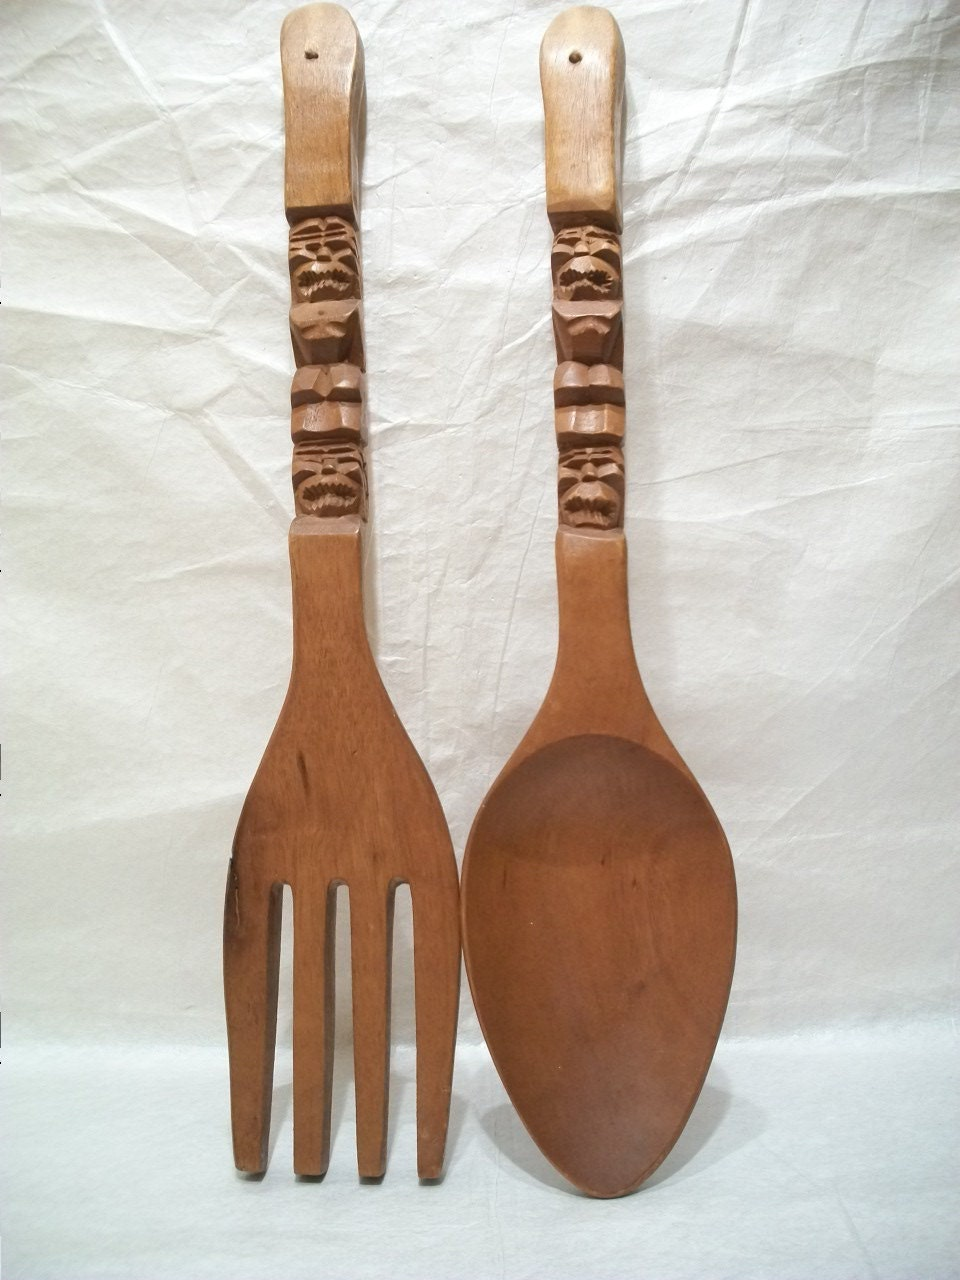 Wall Decor Wooden Fork And Spoon : Large vintage wooden fork and spoon wall decorations by